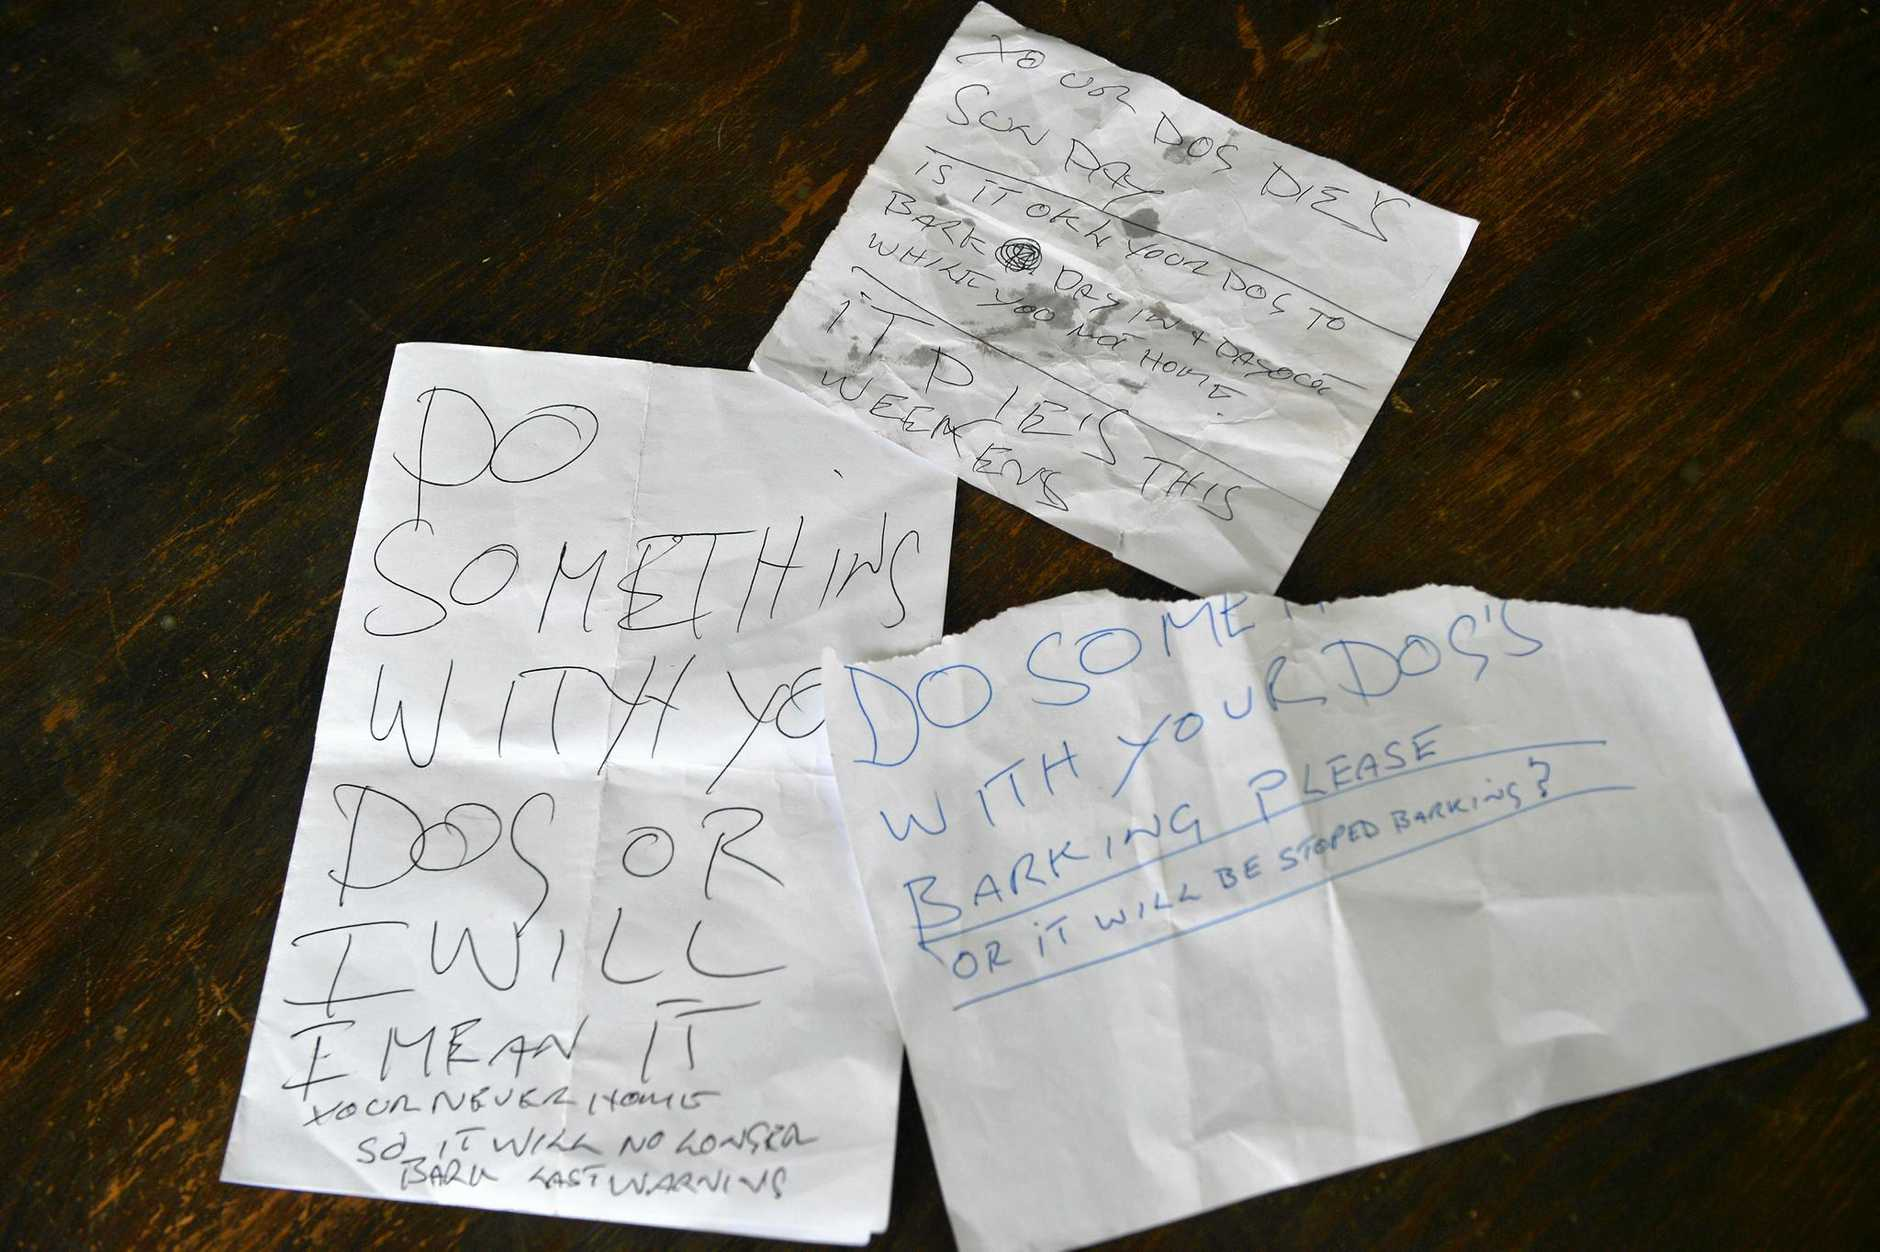 THREATS: A Bundaberg dog owner has received letters threating to kill their pet for barking.